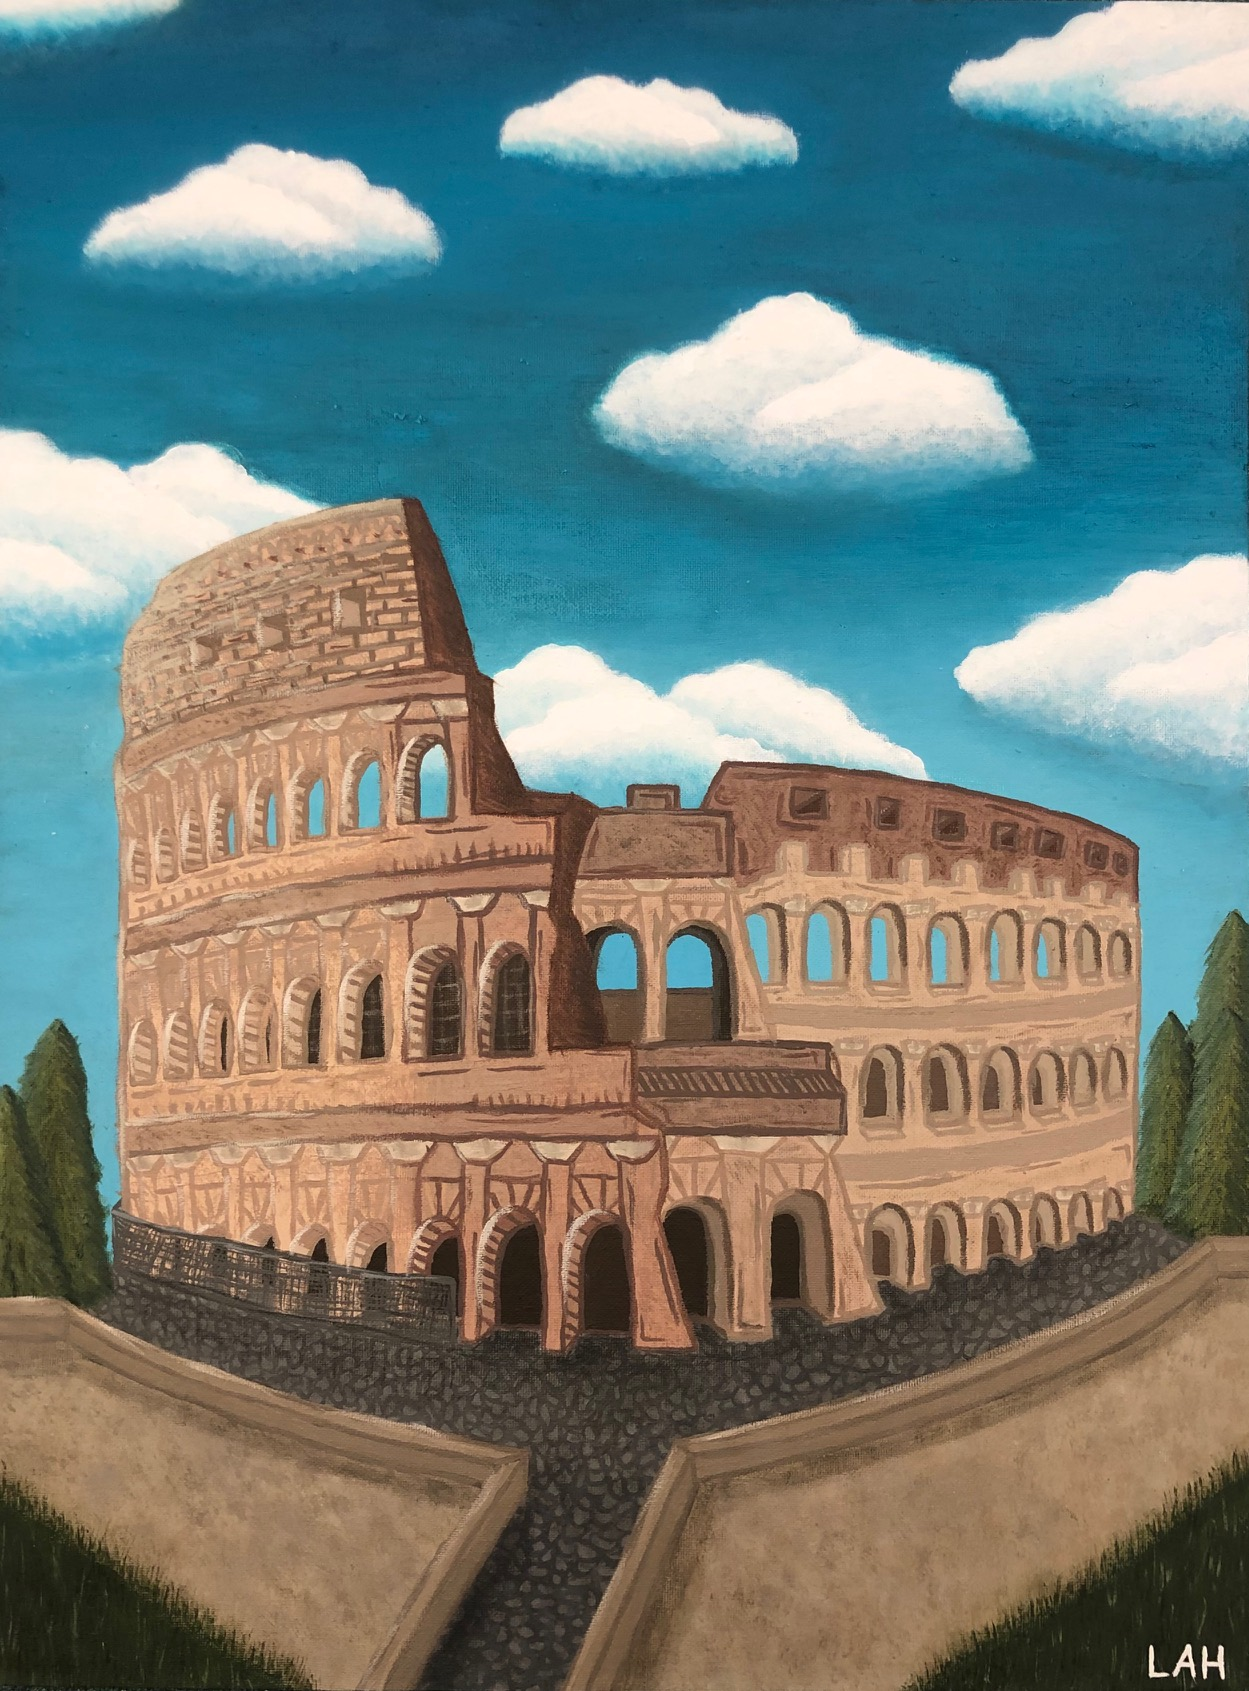 The Ancient Walls of Rome by Livia Aguiar-Hawksby